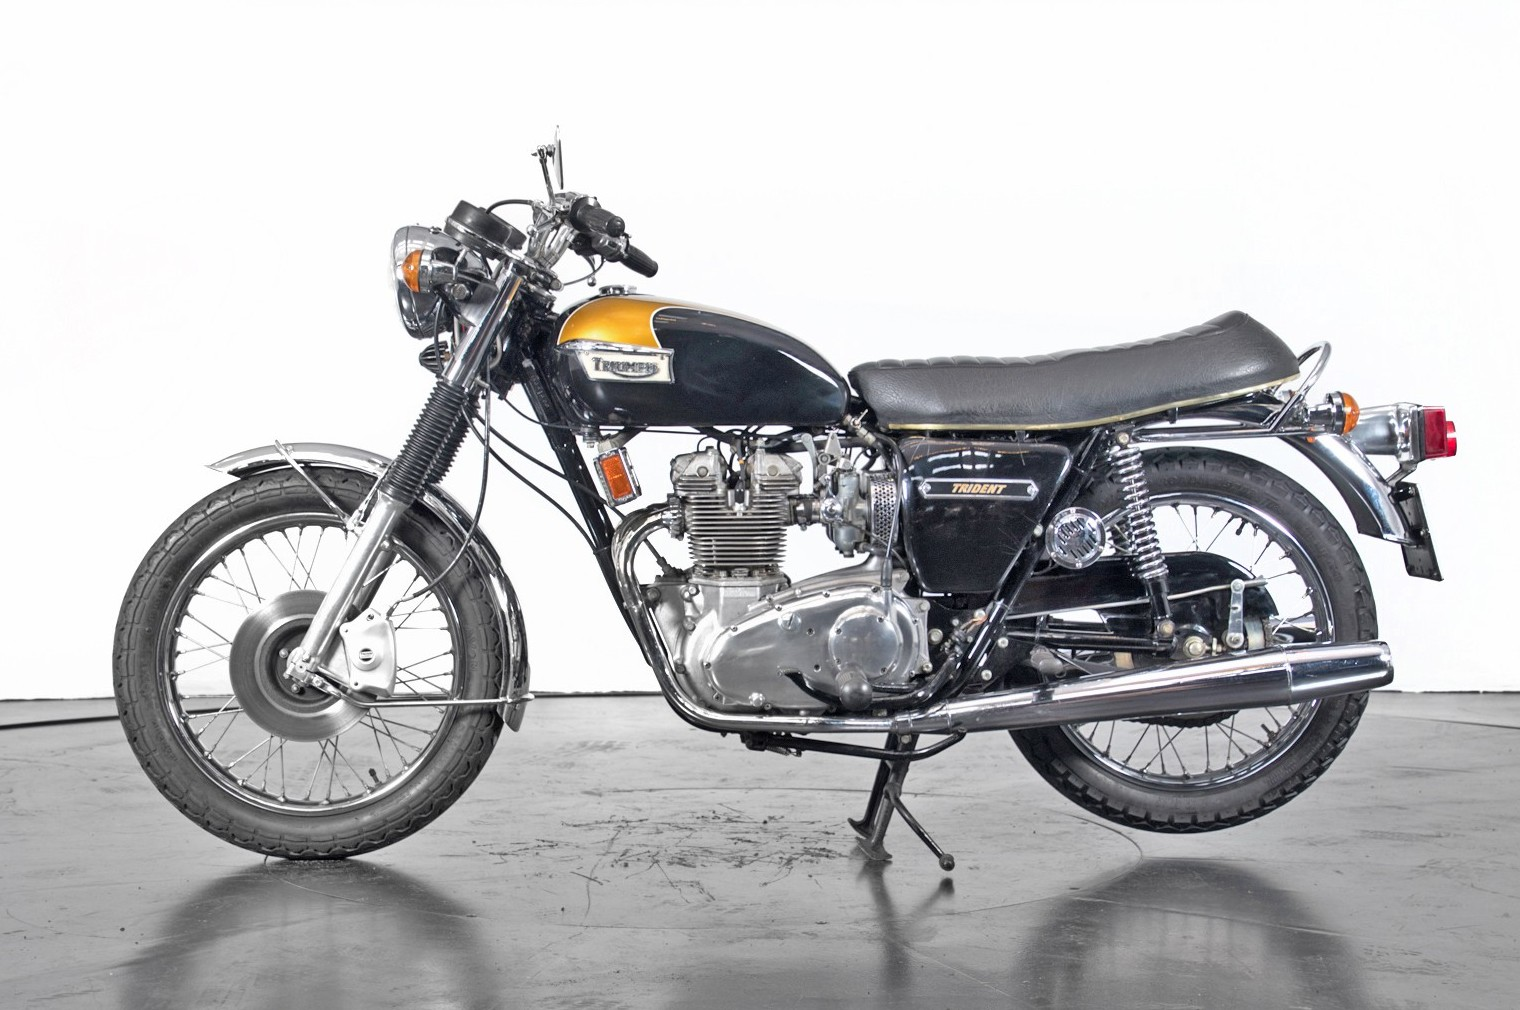 Vintage (used) motorcycles' values: Triumph T150 approx. $16,846 for sale